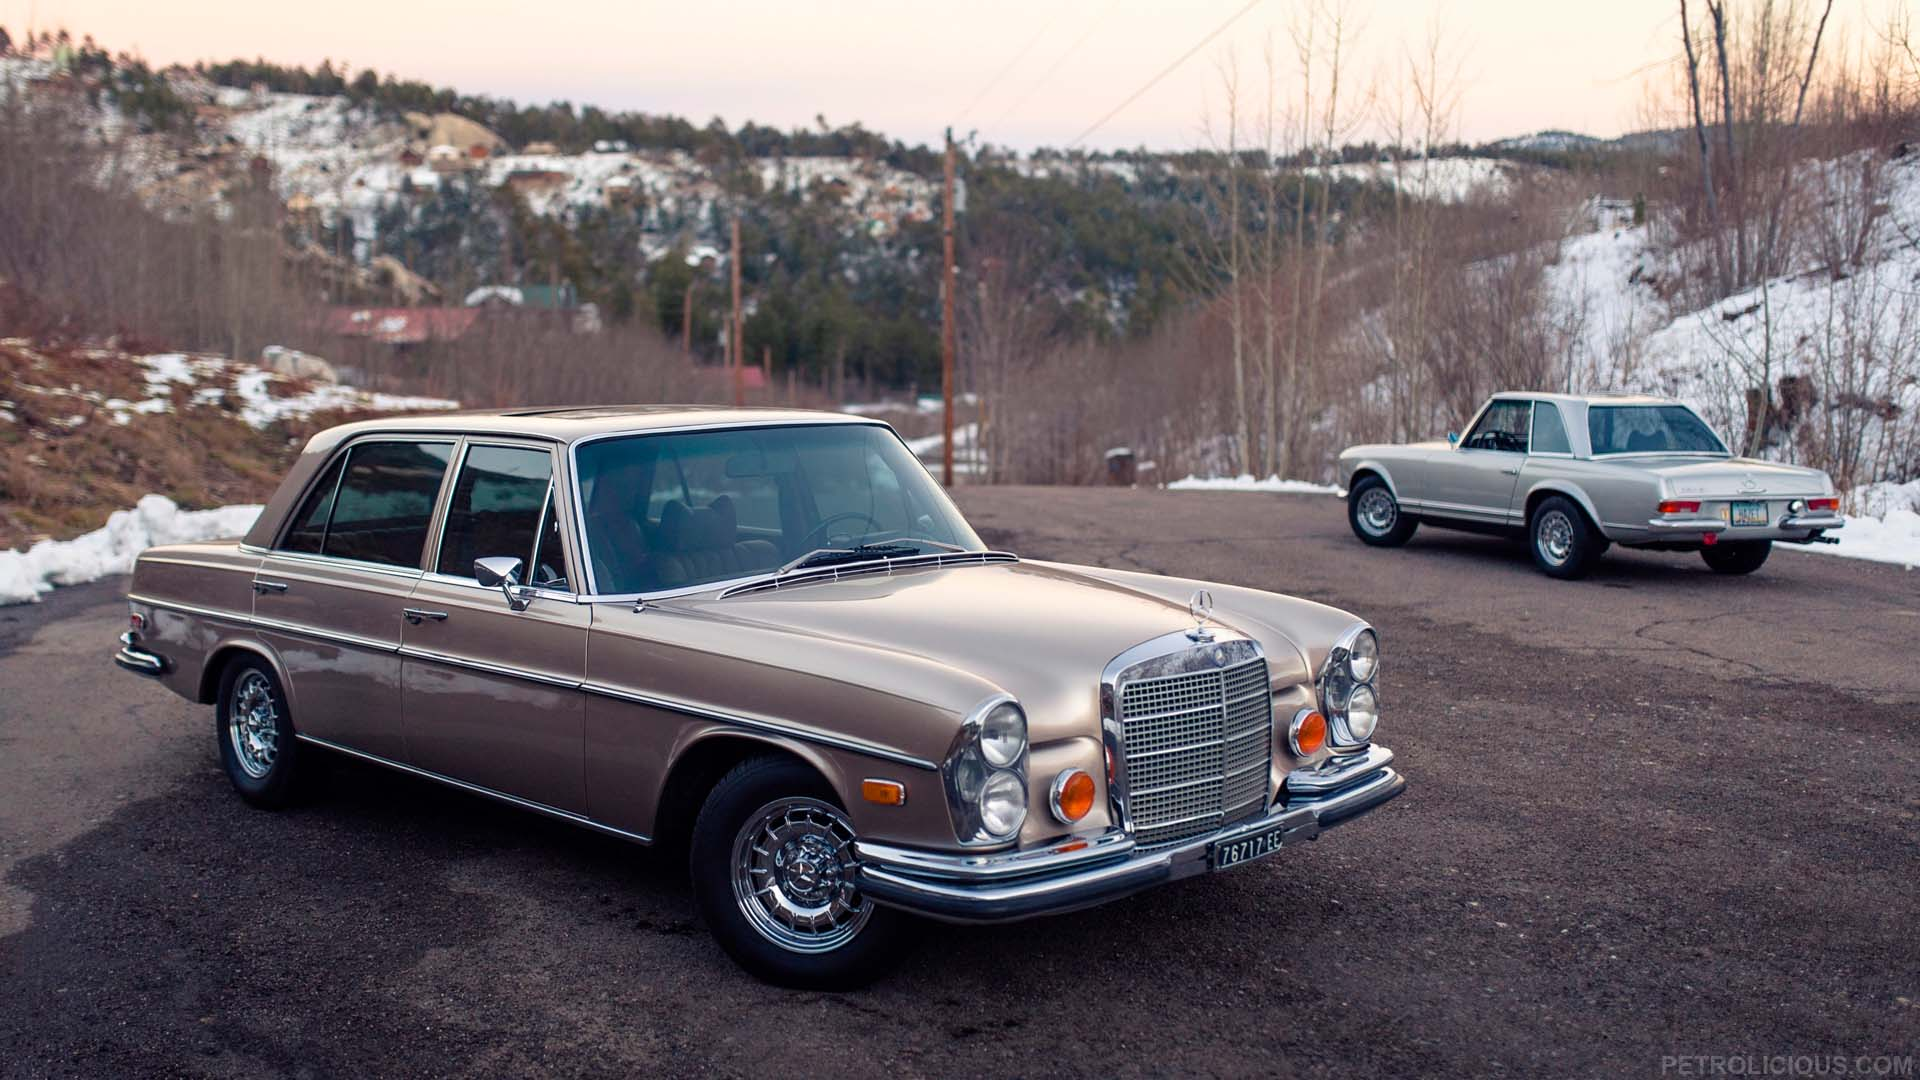 mercedes benz mechanic preserves history in arizona petrolicious. Cars Review. Best American Auto & Cars Review